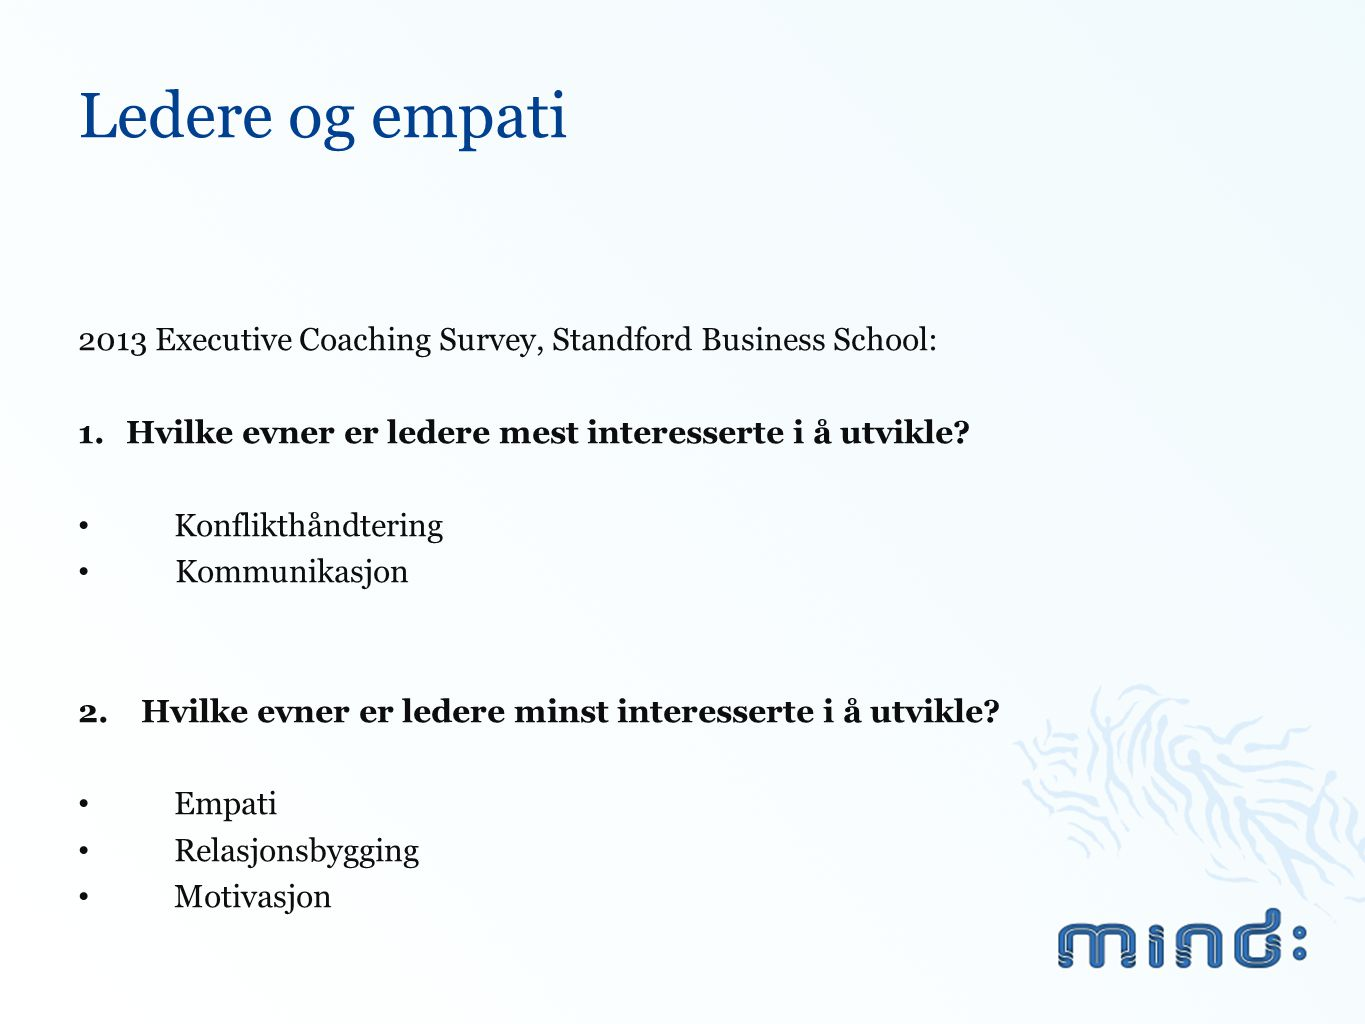 Ledere og empati 2013 Executive Coaching Survey, Standford Business School: Hvilke evner er ledere mest interesserte i å utvikle